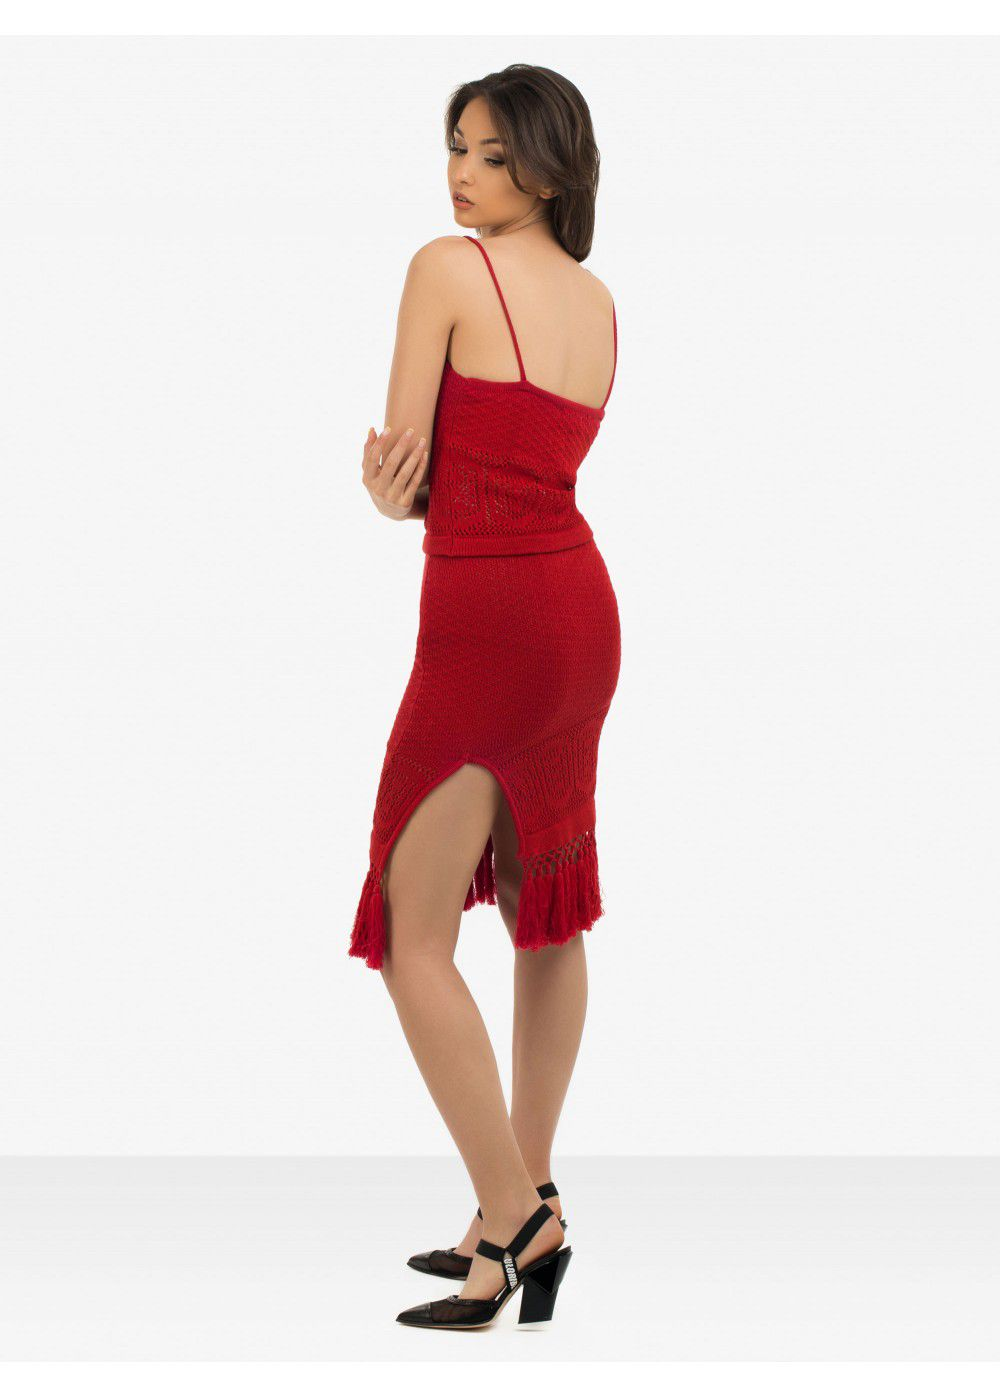 Echo 77 Bali Paradise Red Skirt